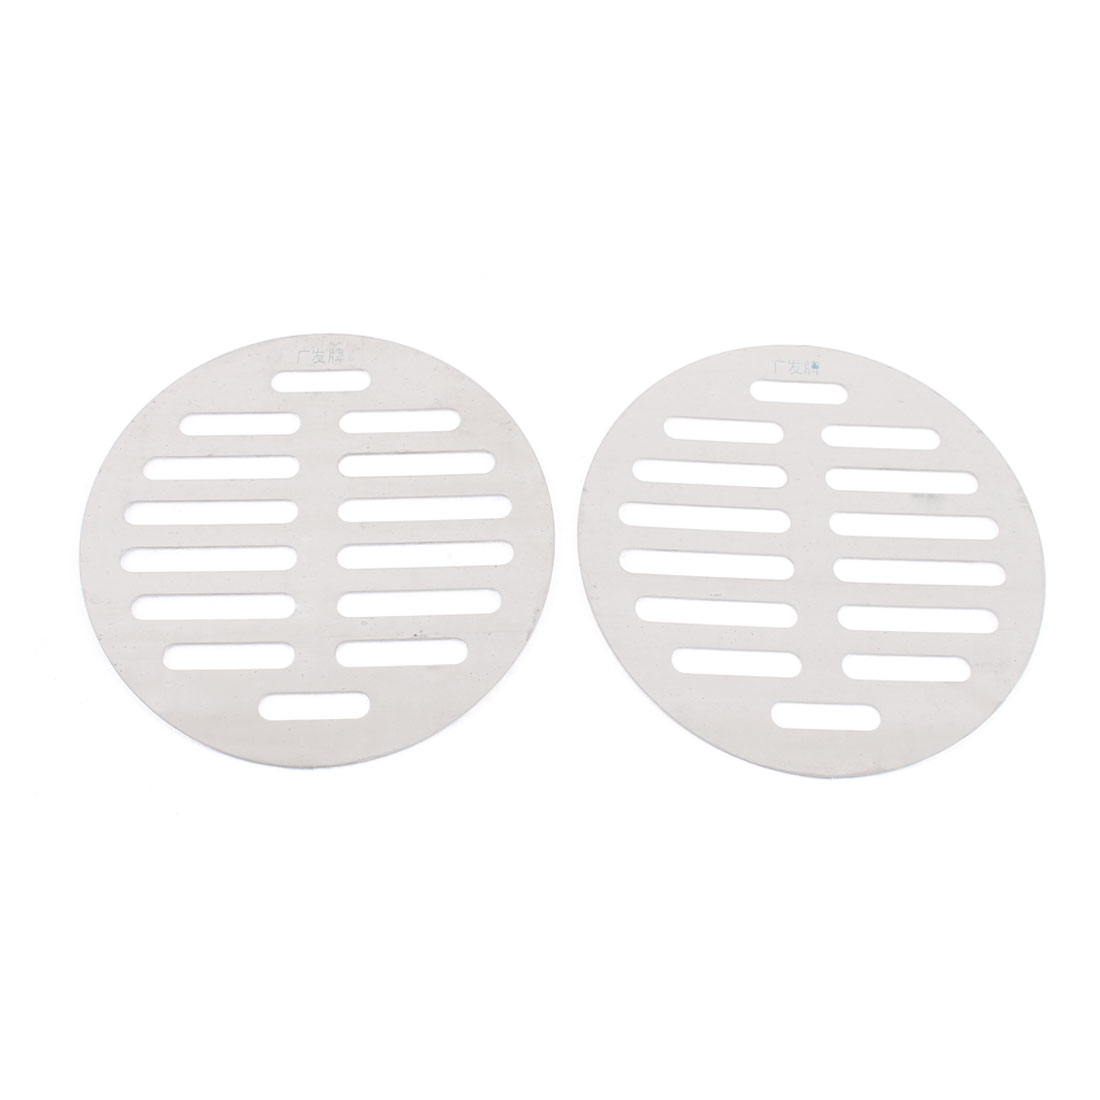 "Stainless Steel Kitchen Bathroom Round Floor Drain Cover 4.4"" 11.3cm 2pcs"